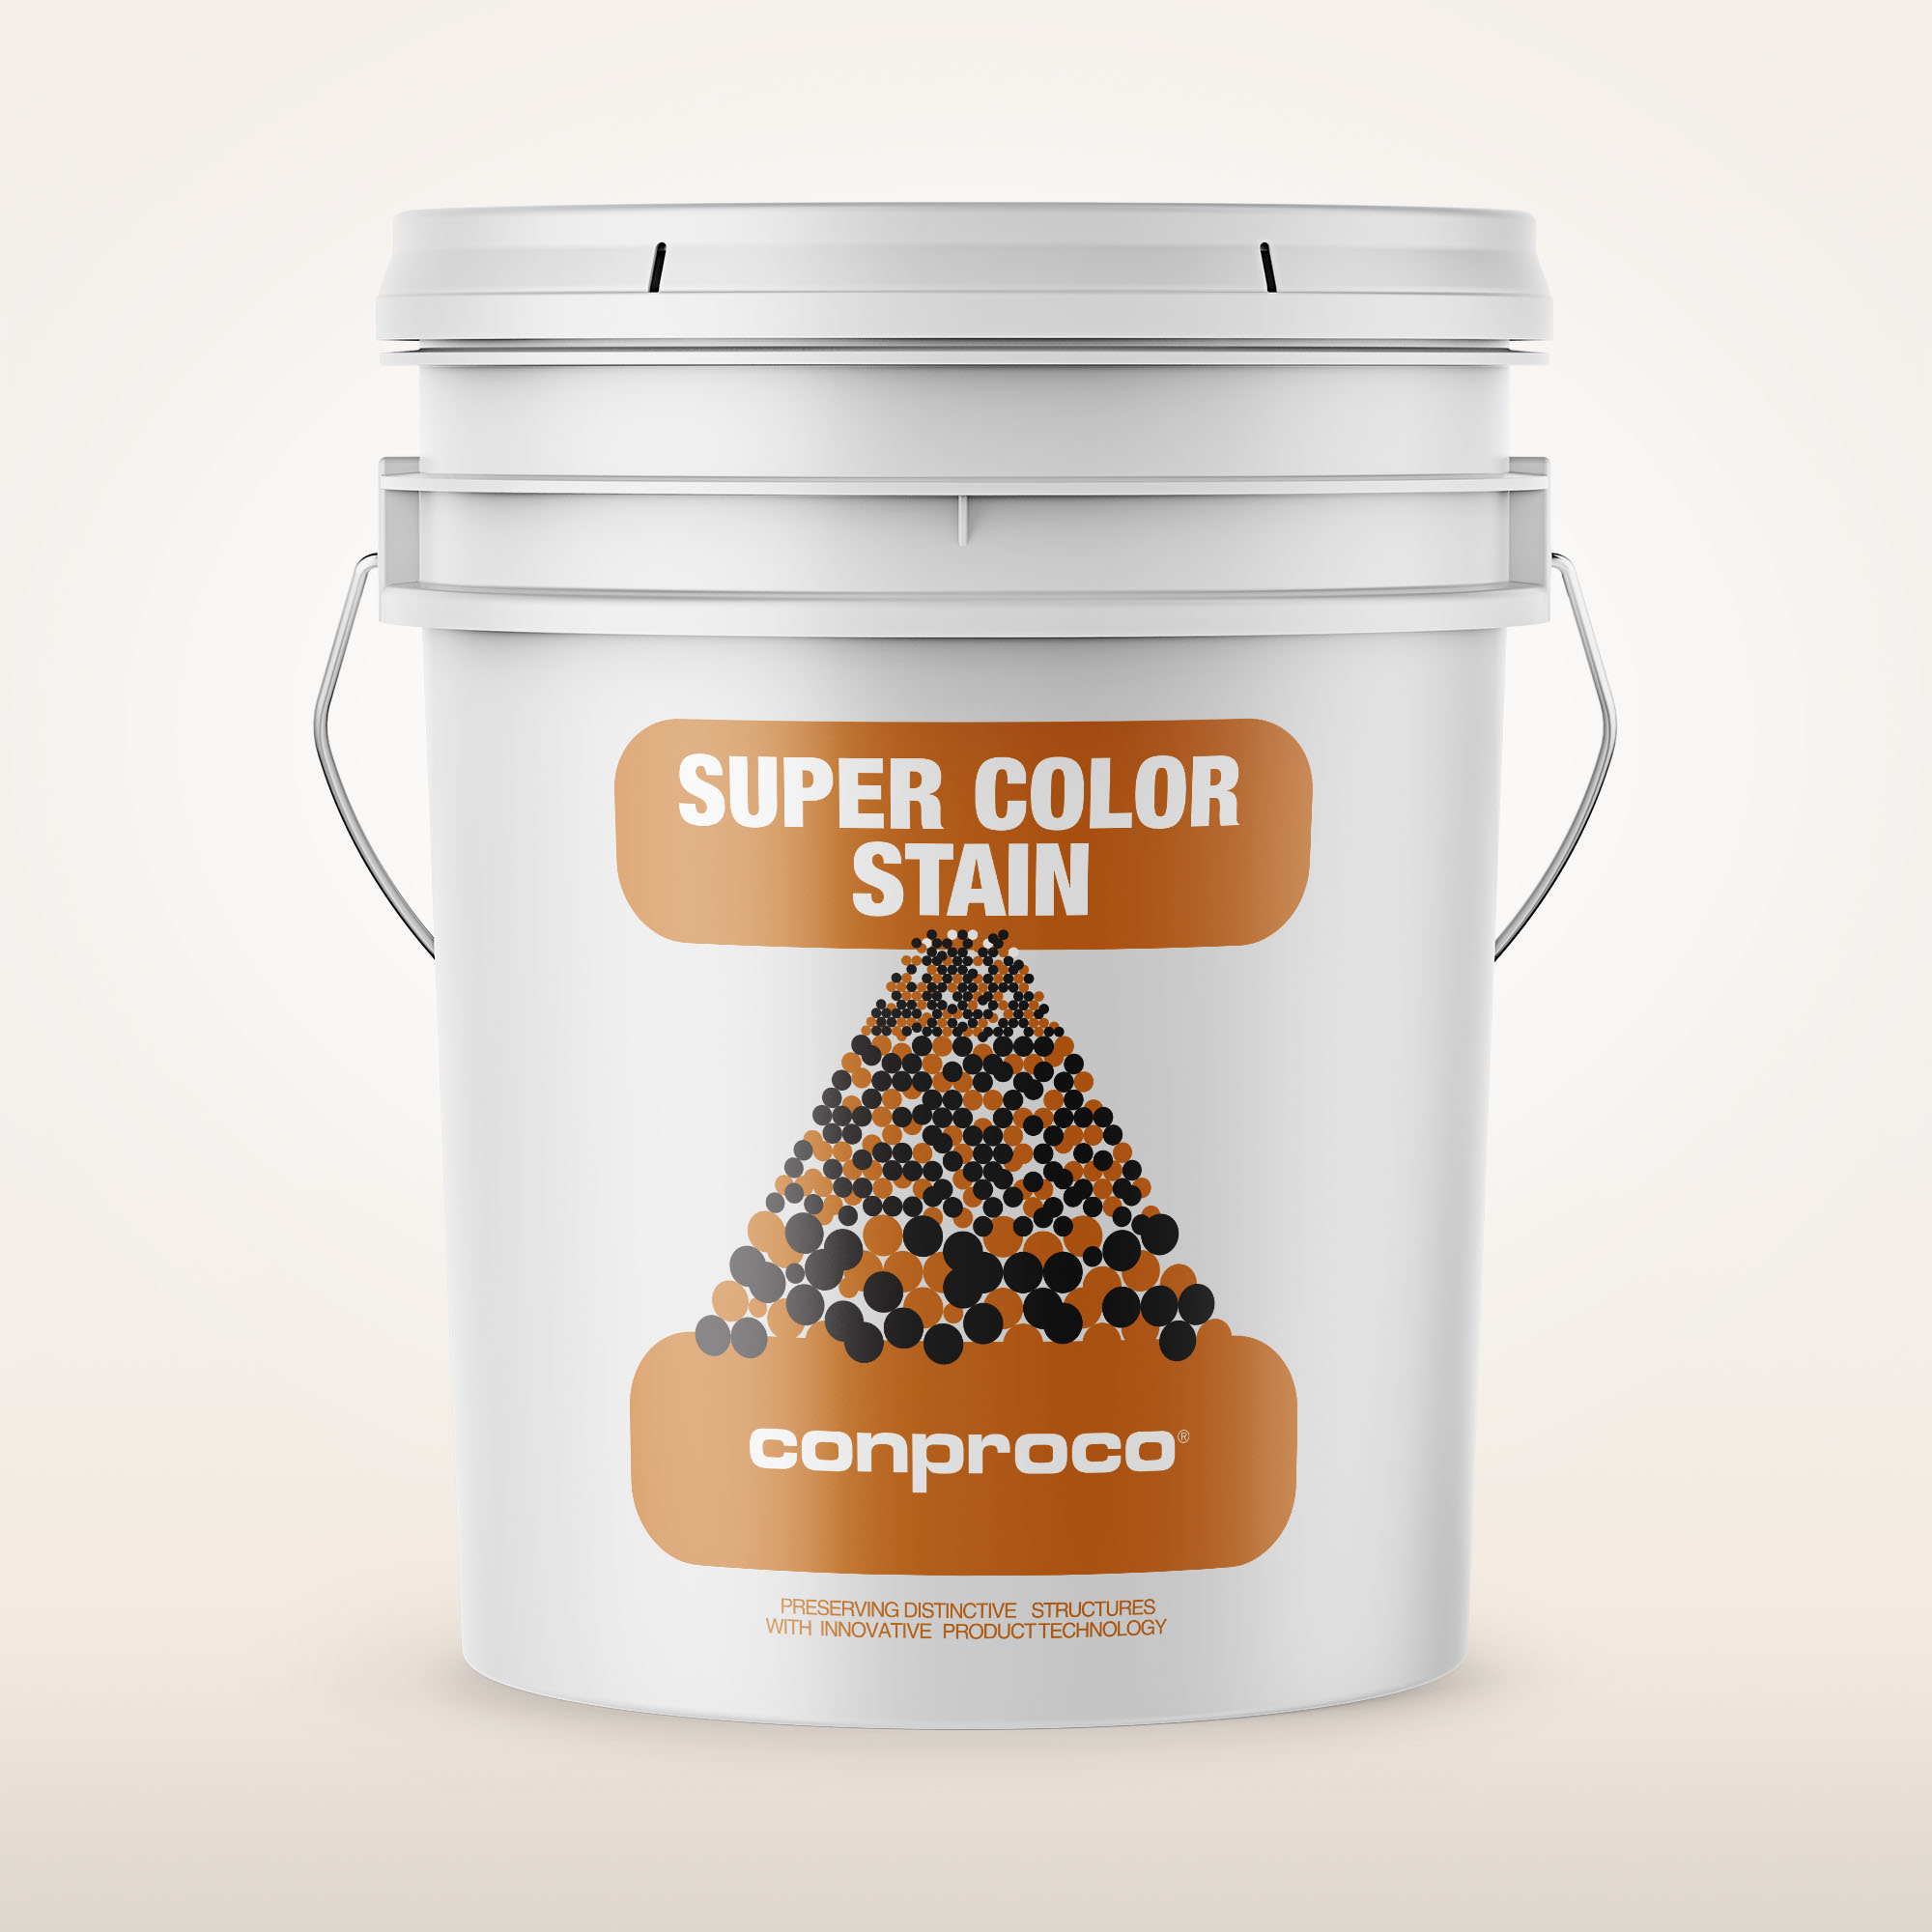 Super Color Stain 5 gallon pail of stain for concrete masonry